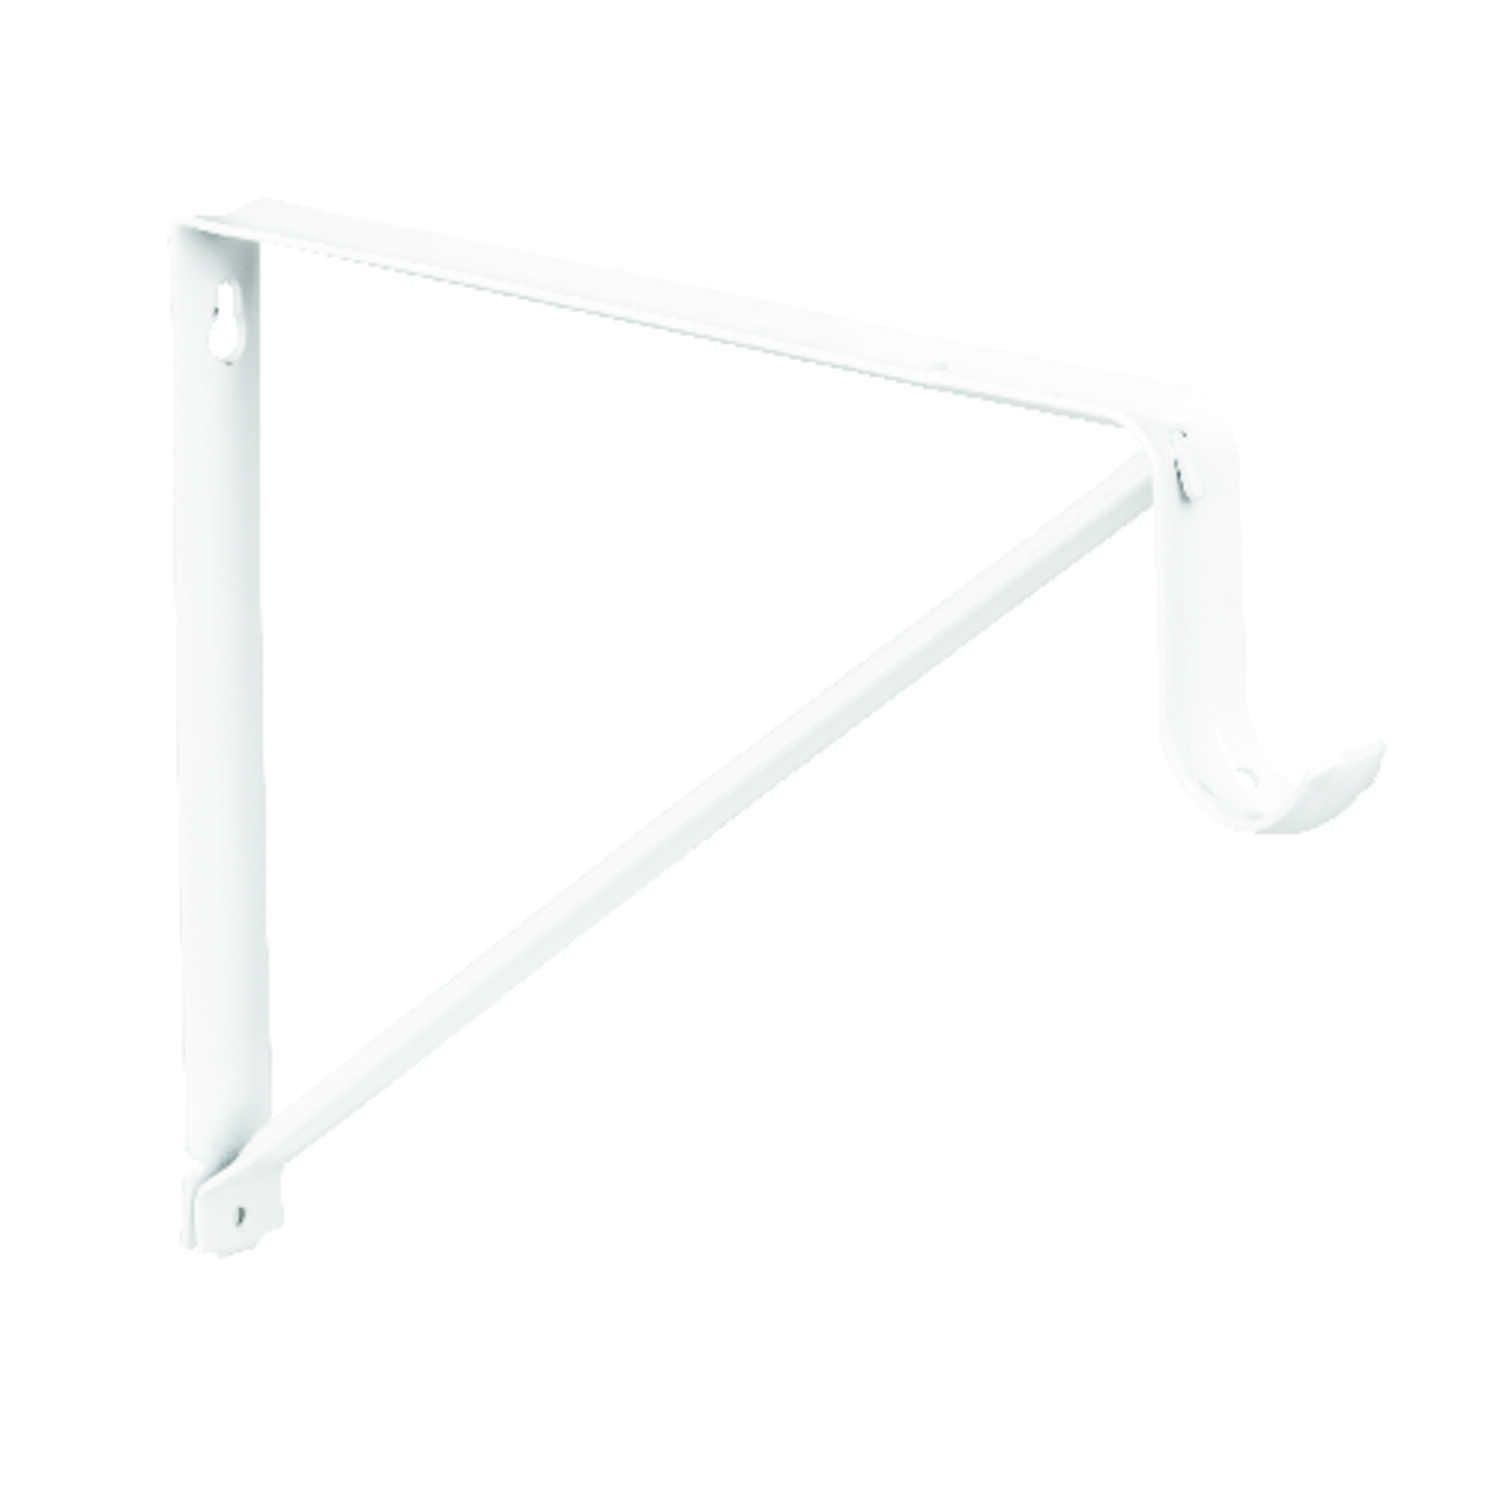 Knape & Vogt  John Sterling  White  Steel  Shelf/Rod  Bracket  9-1/2 in. H x 13 in. L 250 lb.